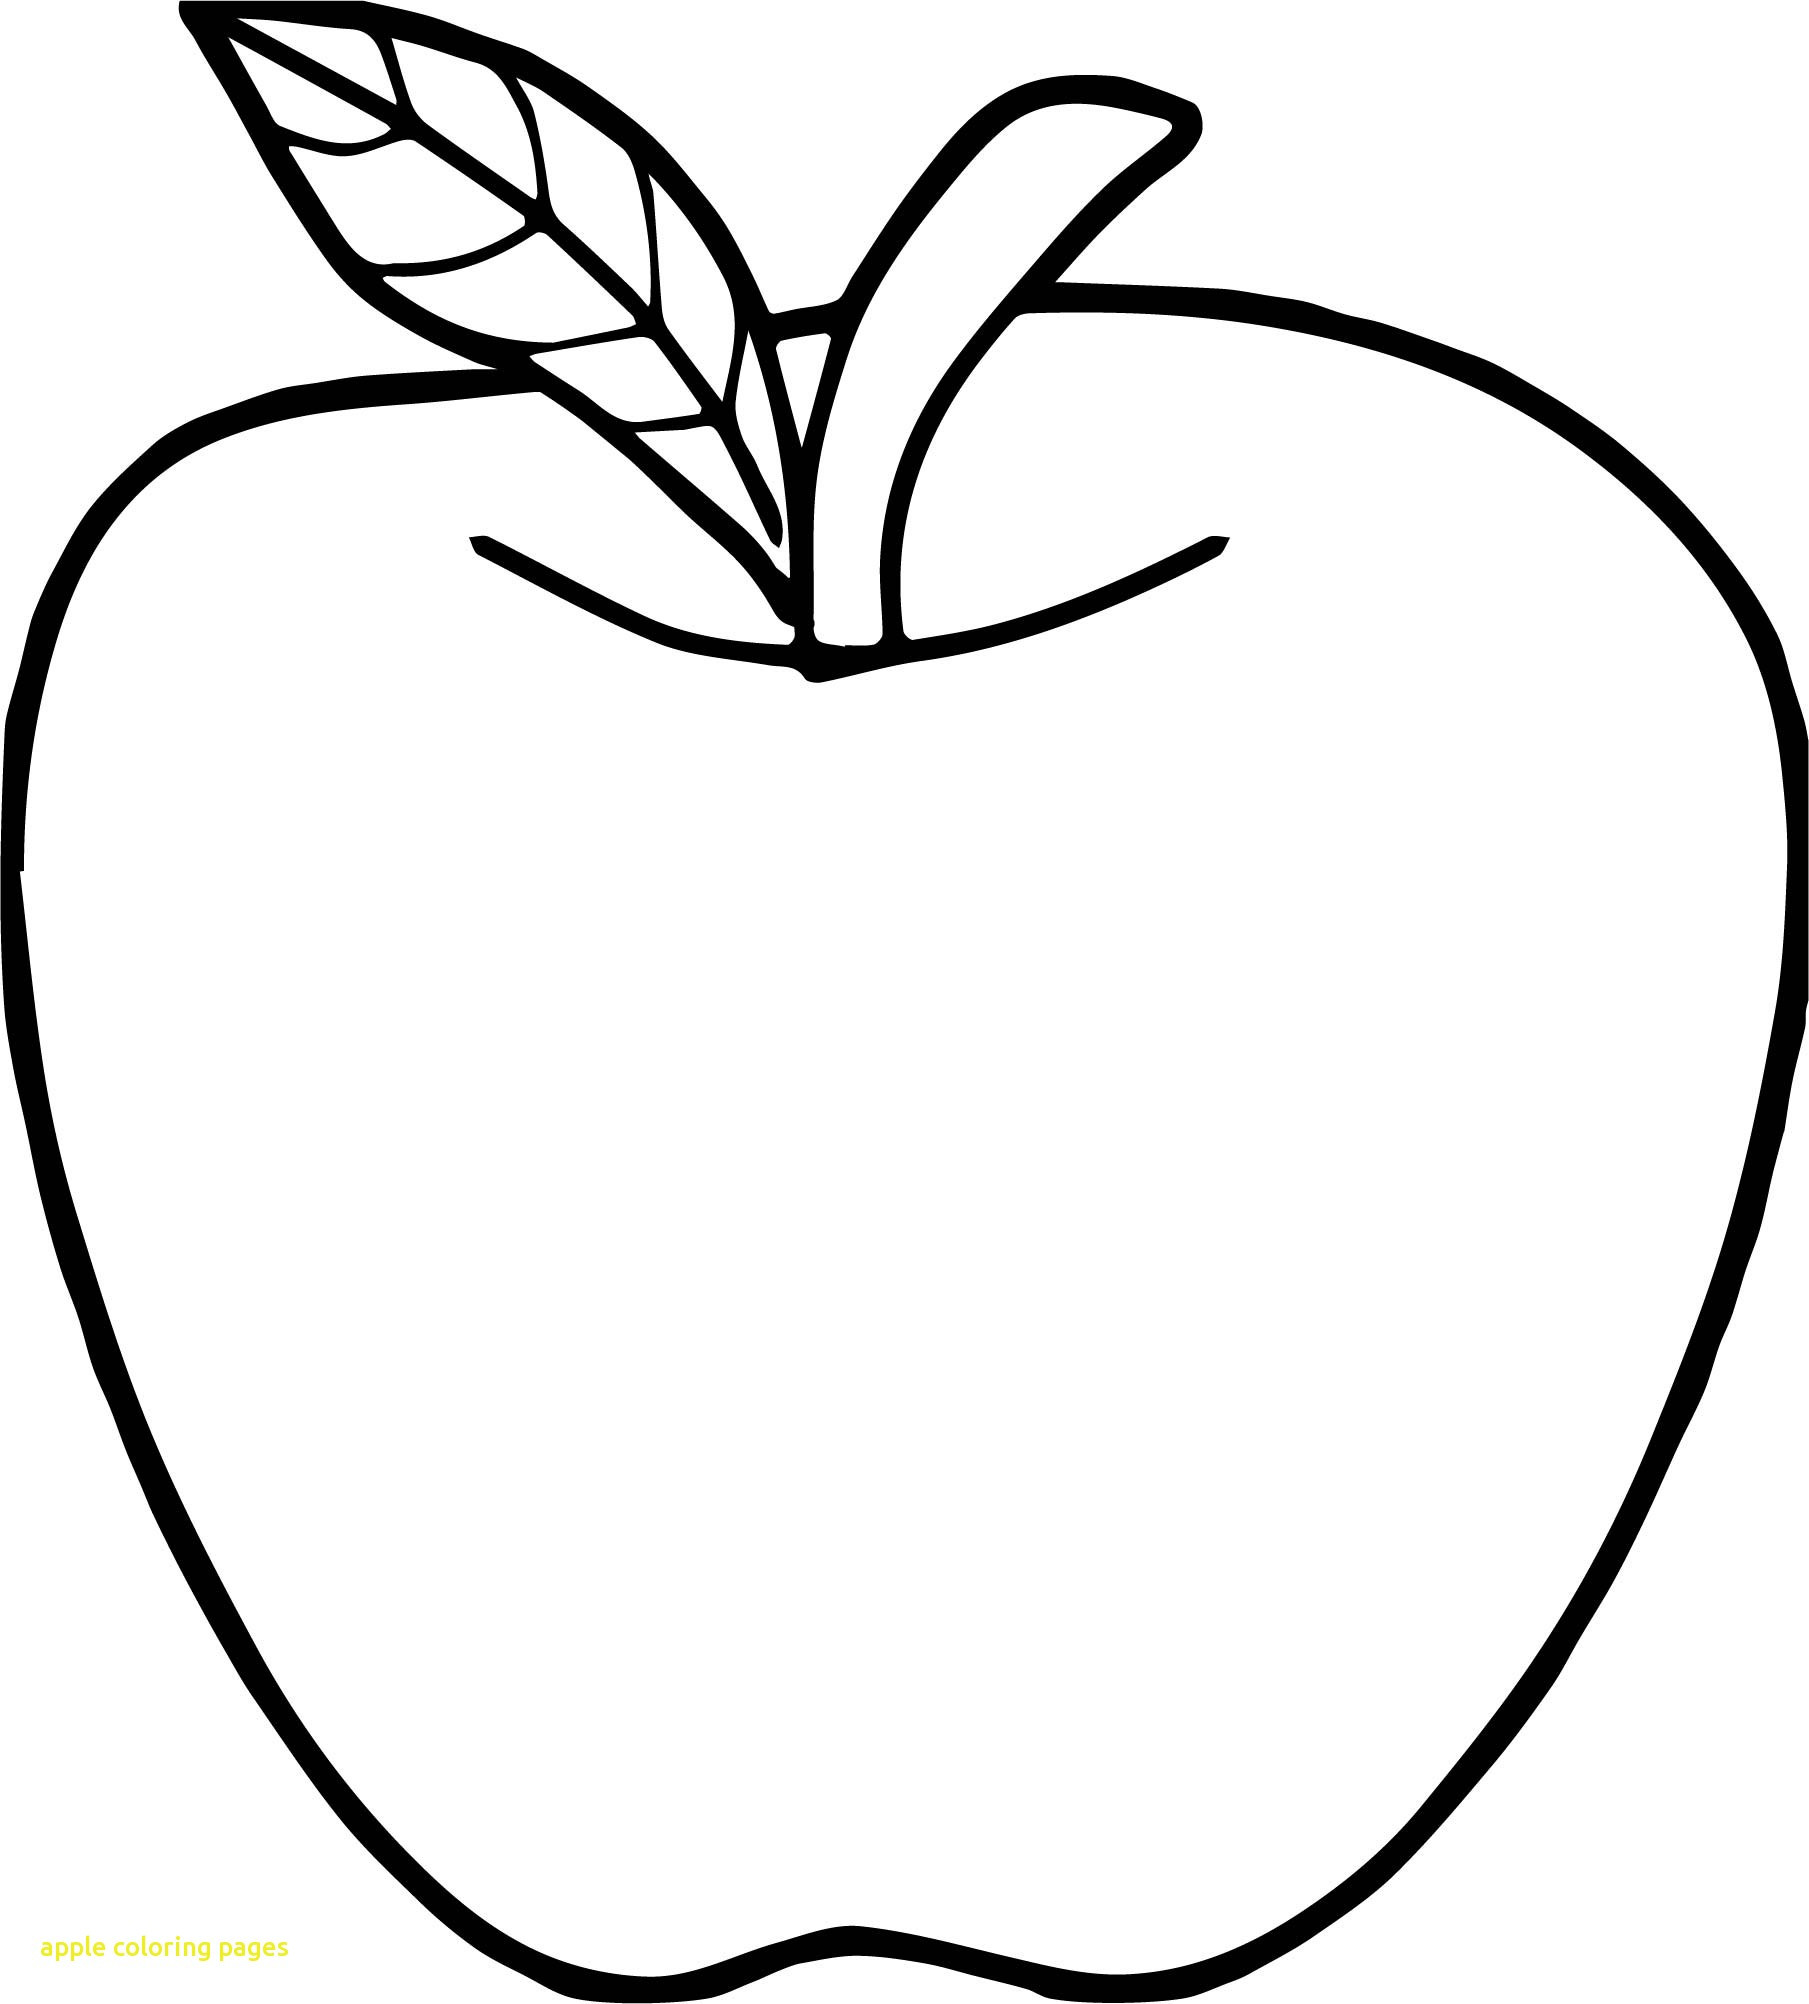 Daycare Coloring Pages At Getcolorings